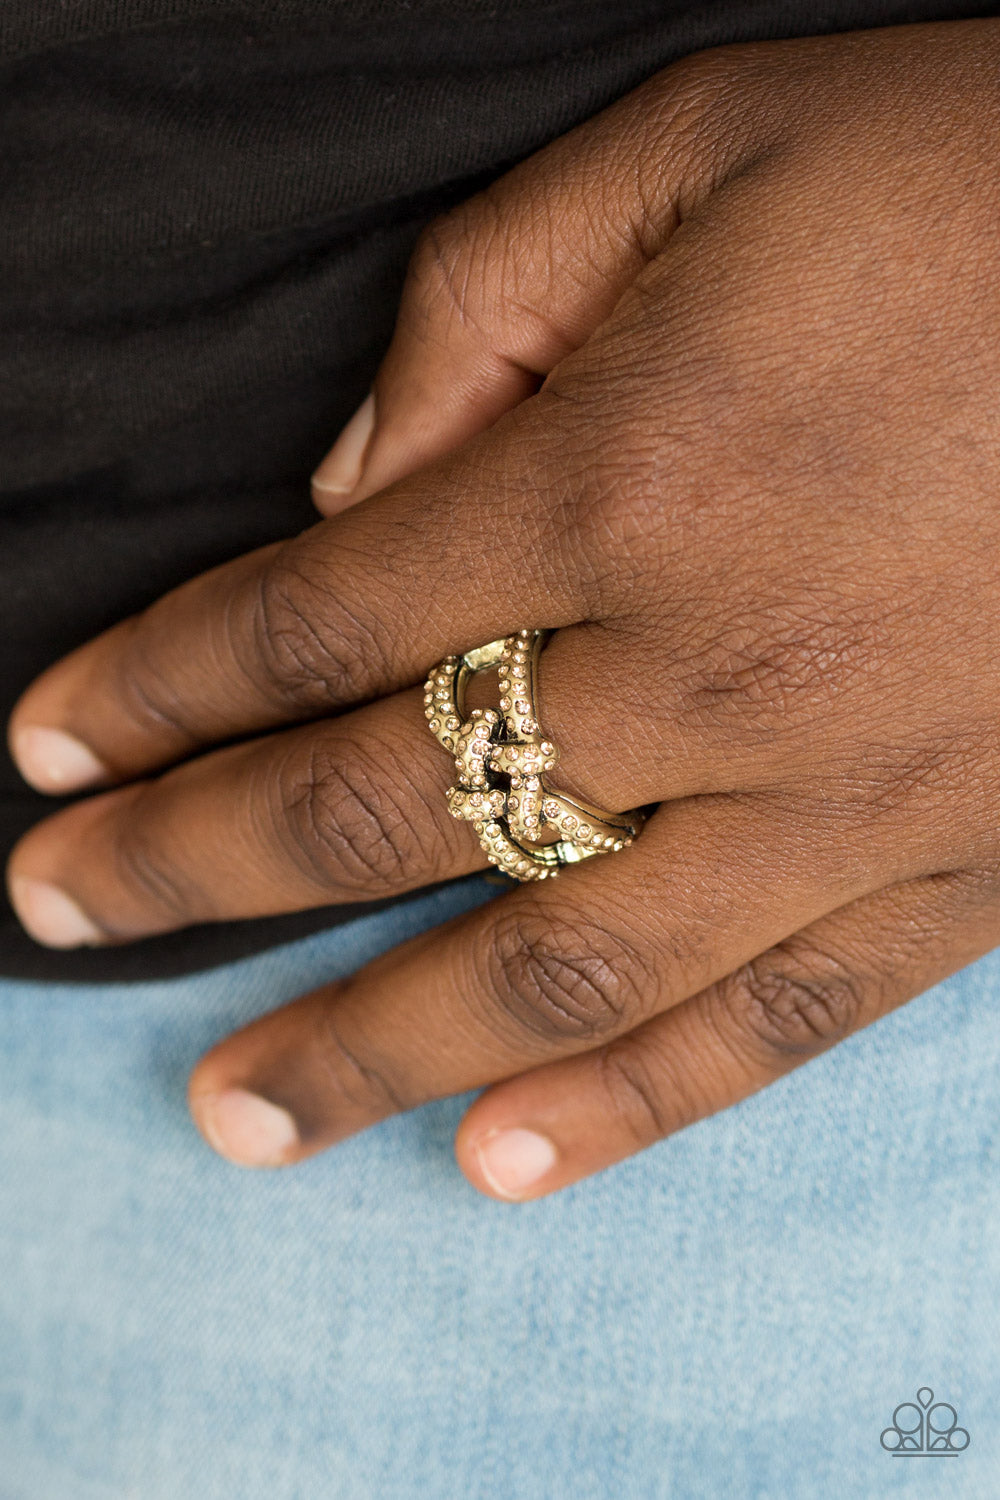 Can Only Go Upscale from Here - Brass Ring - SavvyChicksJewelry